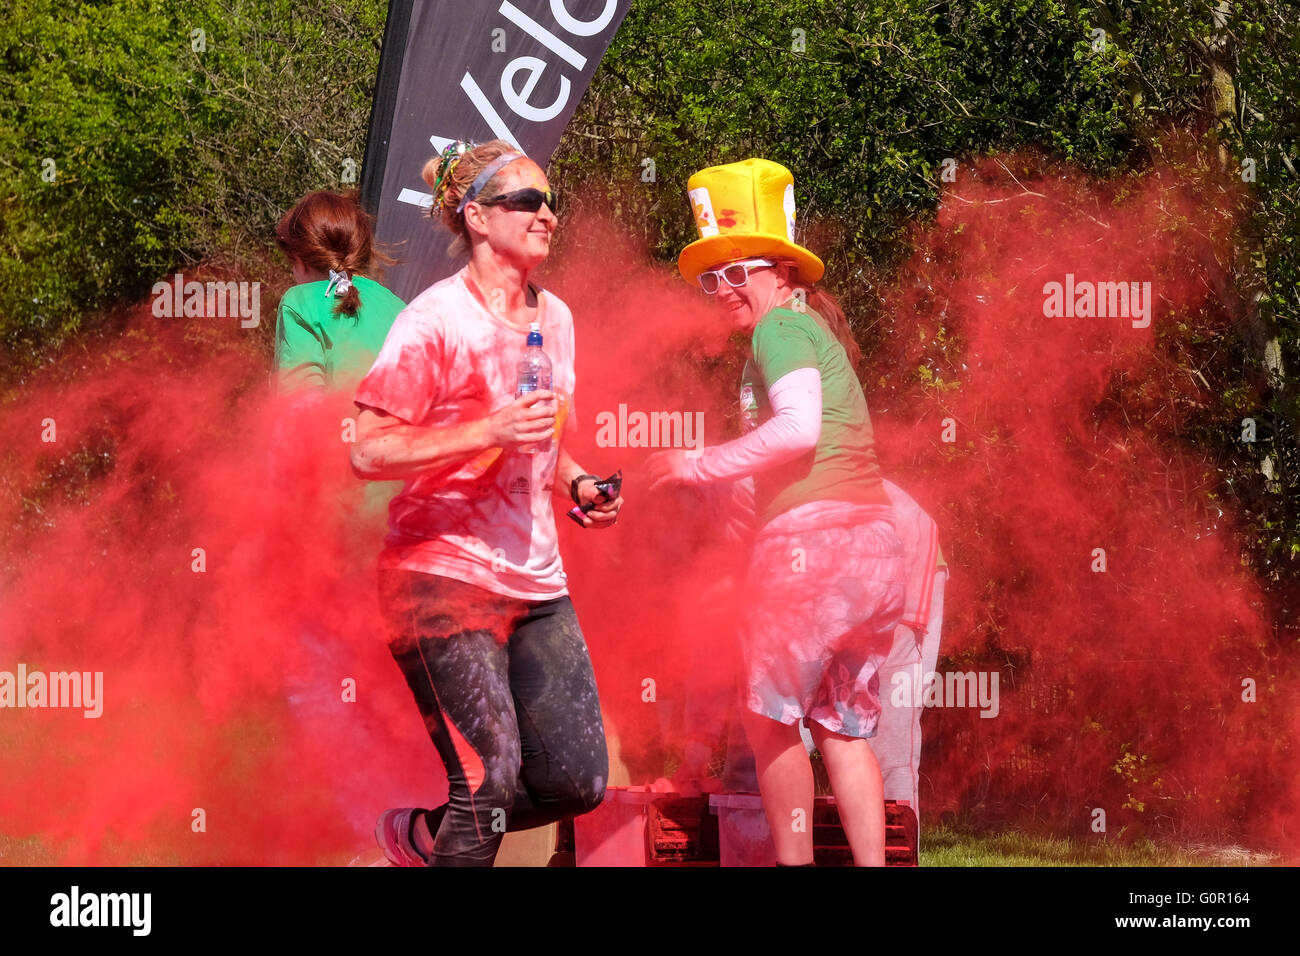 Runners taking part in a charity colour run at the University of Central Lancashire in Preston - Stock Image